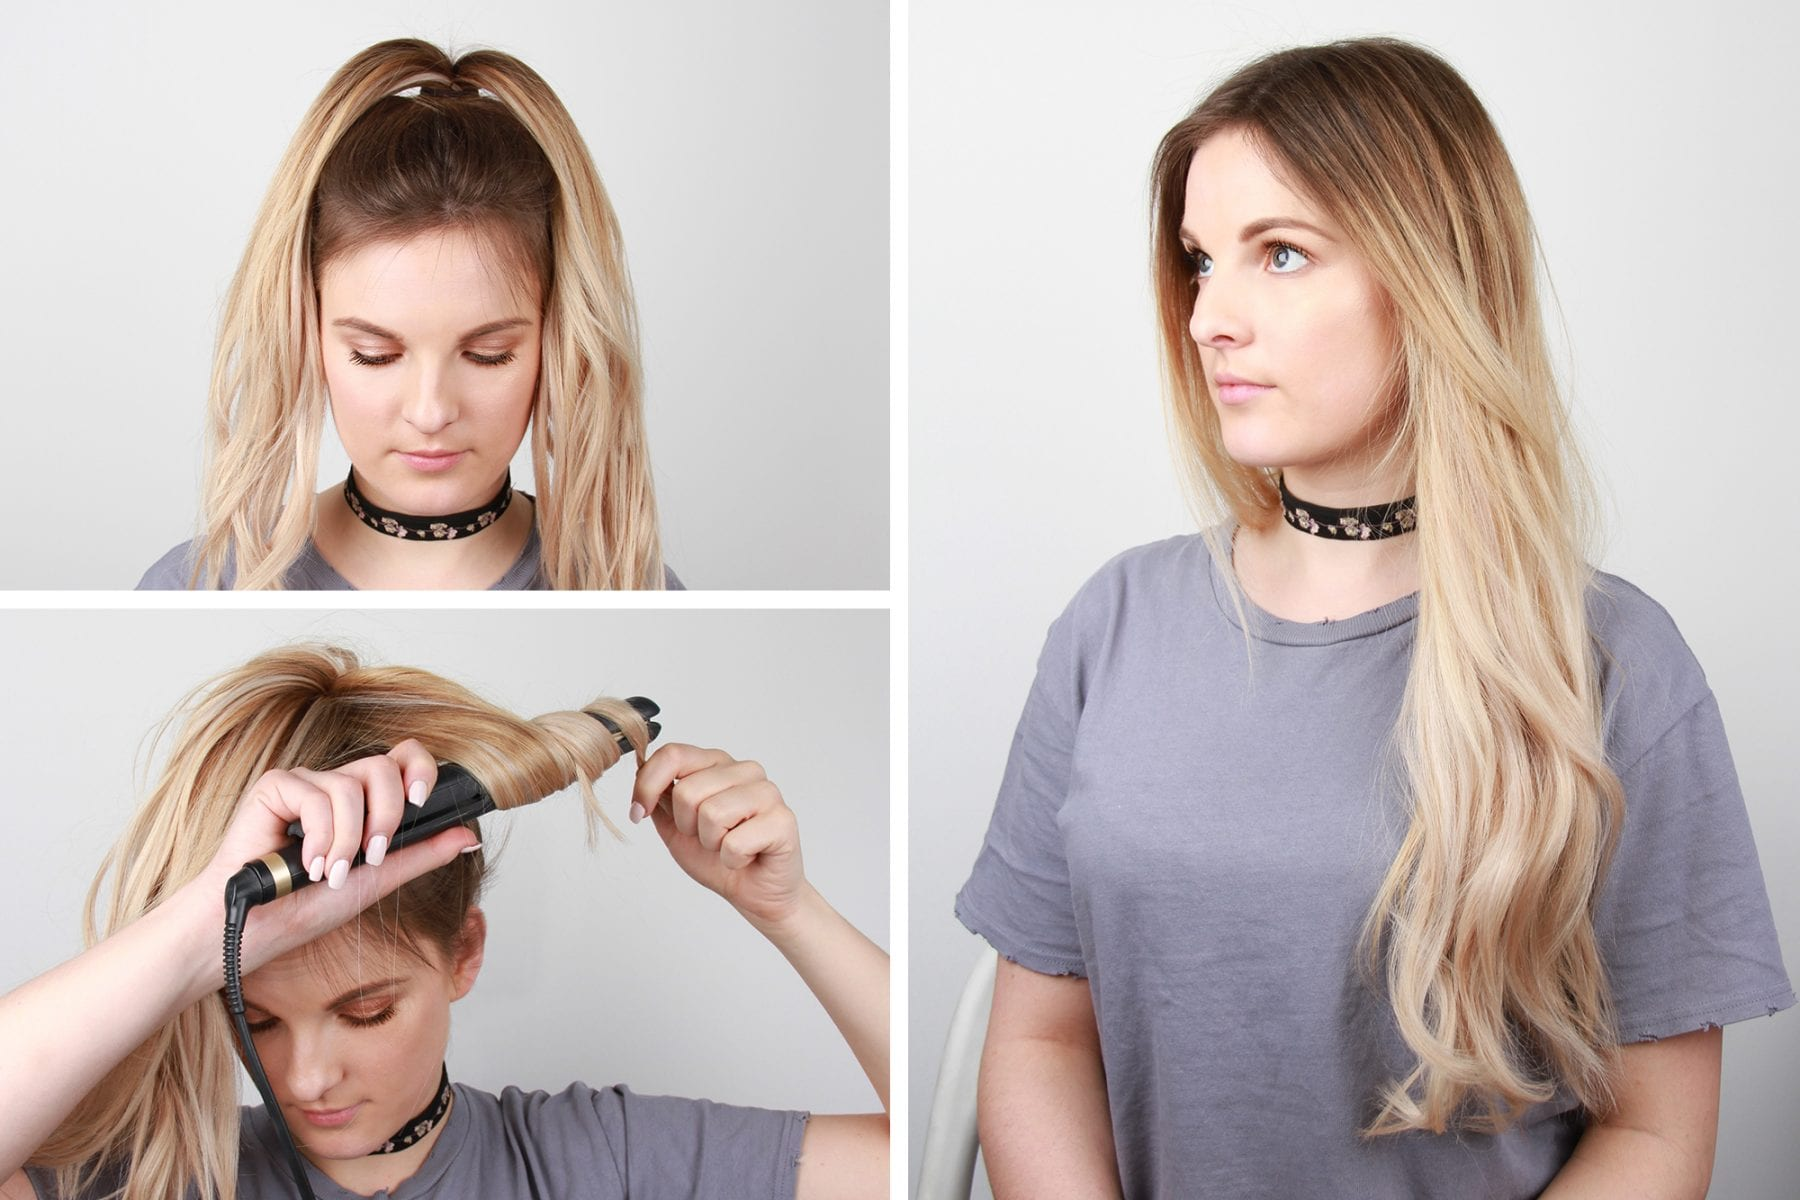 curling hair in less than 5 minutes